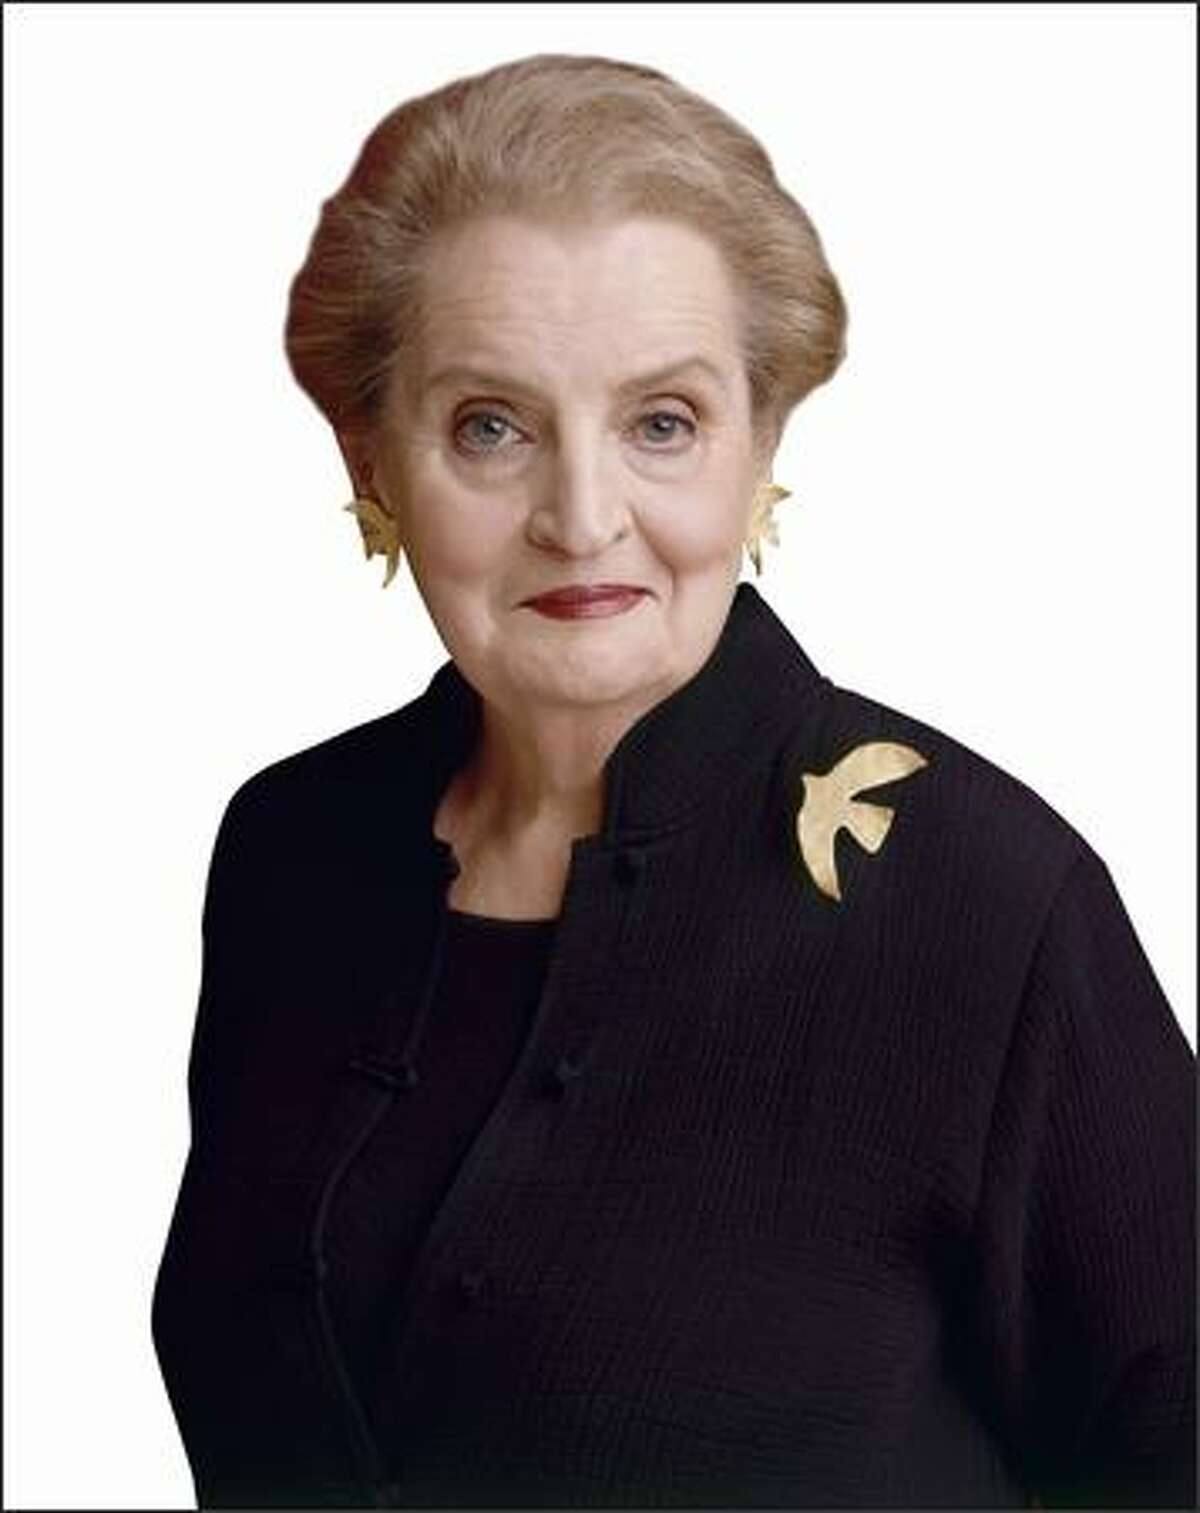 Former Secretary of State Madeleine Albright is the author of